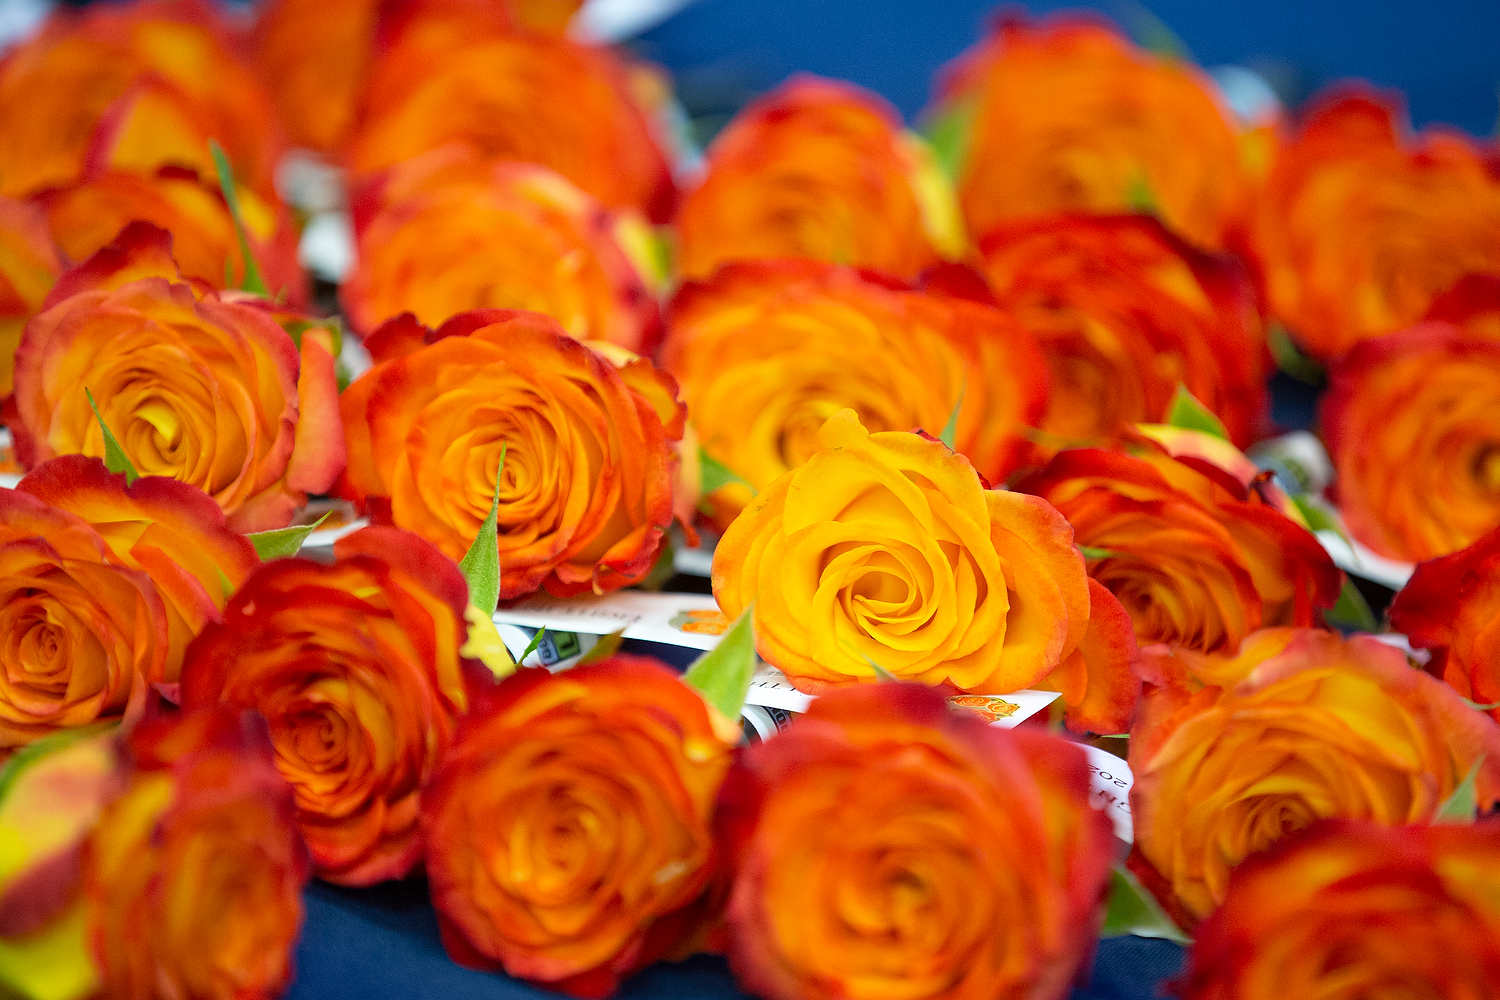 A close-up of several orange-red roses laying on a table. Paper tags are attached to the stem of each one.